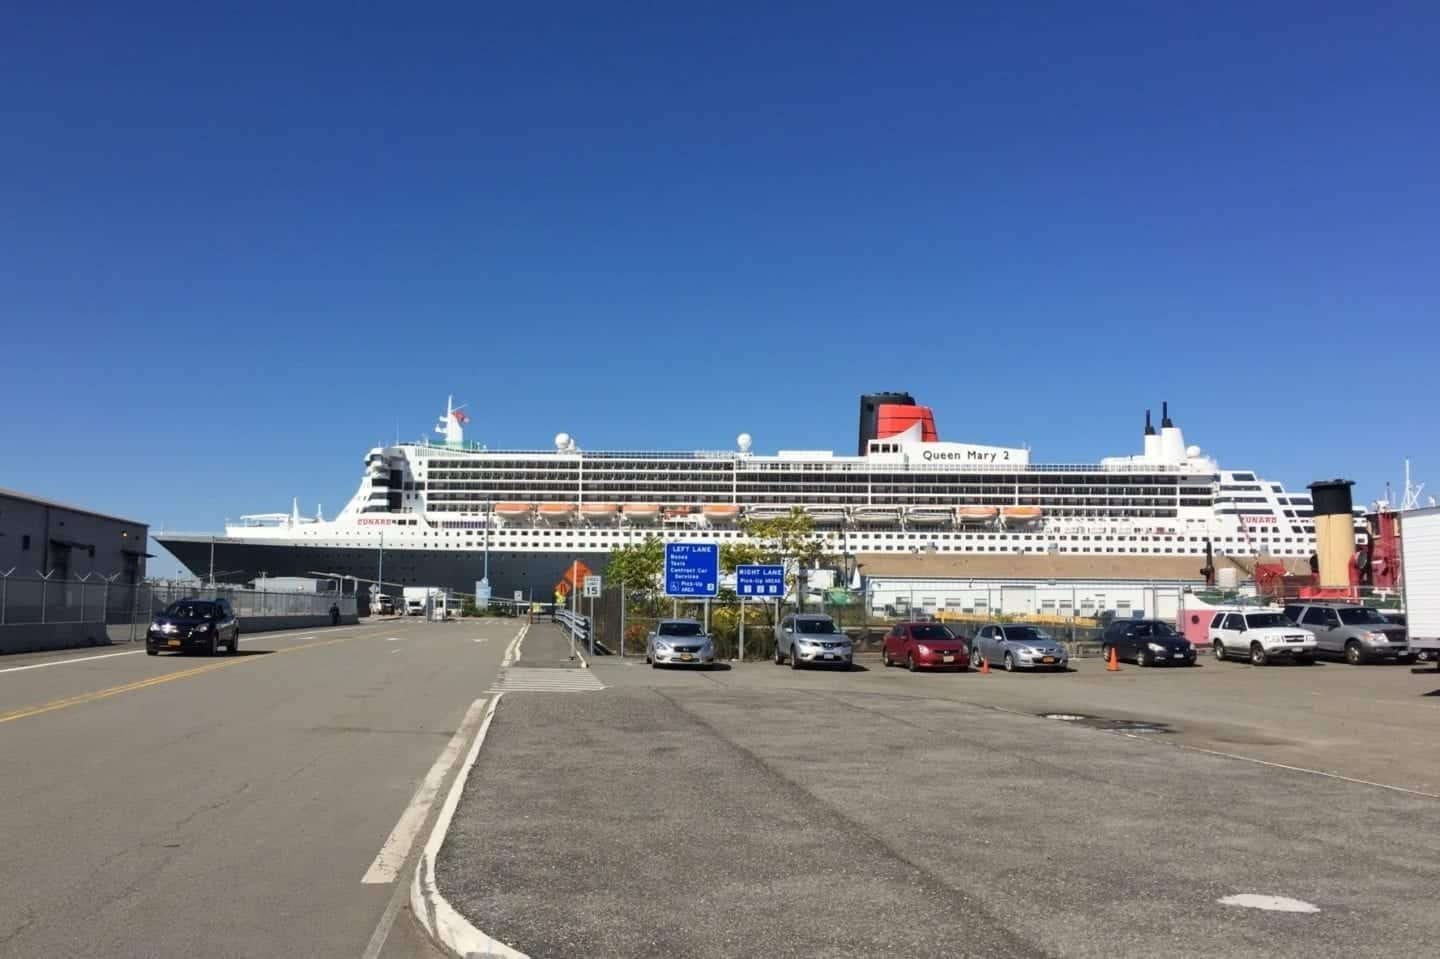 What to Expect on a Queen Mary 2 Transatlantic Cruise